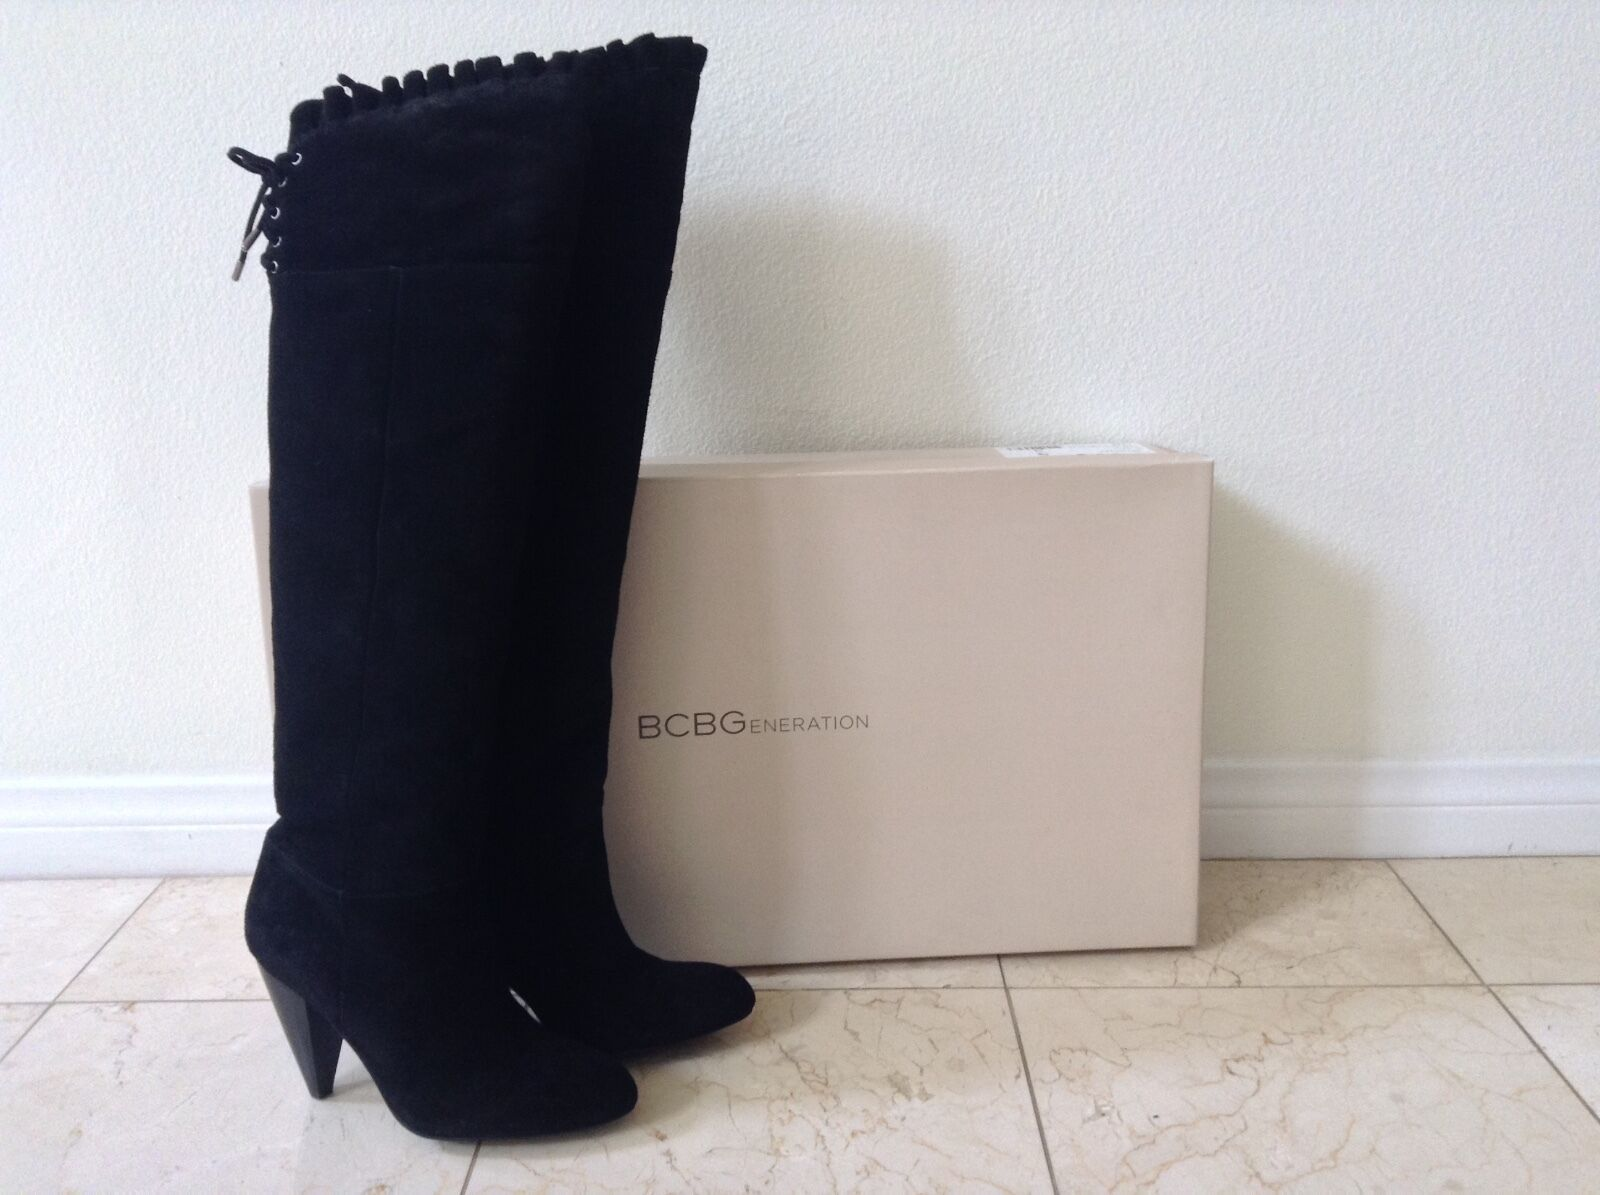 Women's BCBGeneration Sz 7 Black Suede Lace Knee-High/Over-the-Knee Heel Boots